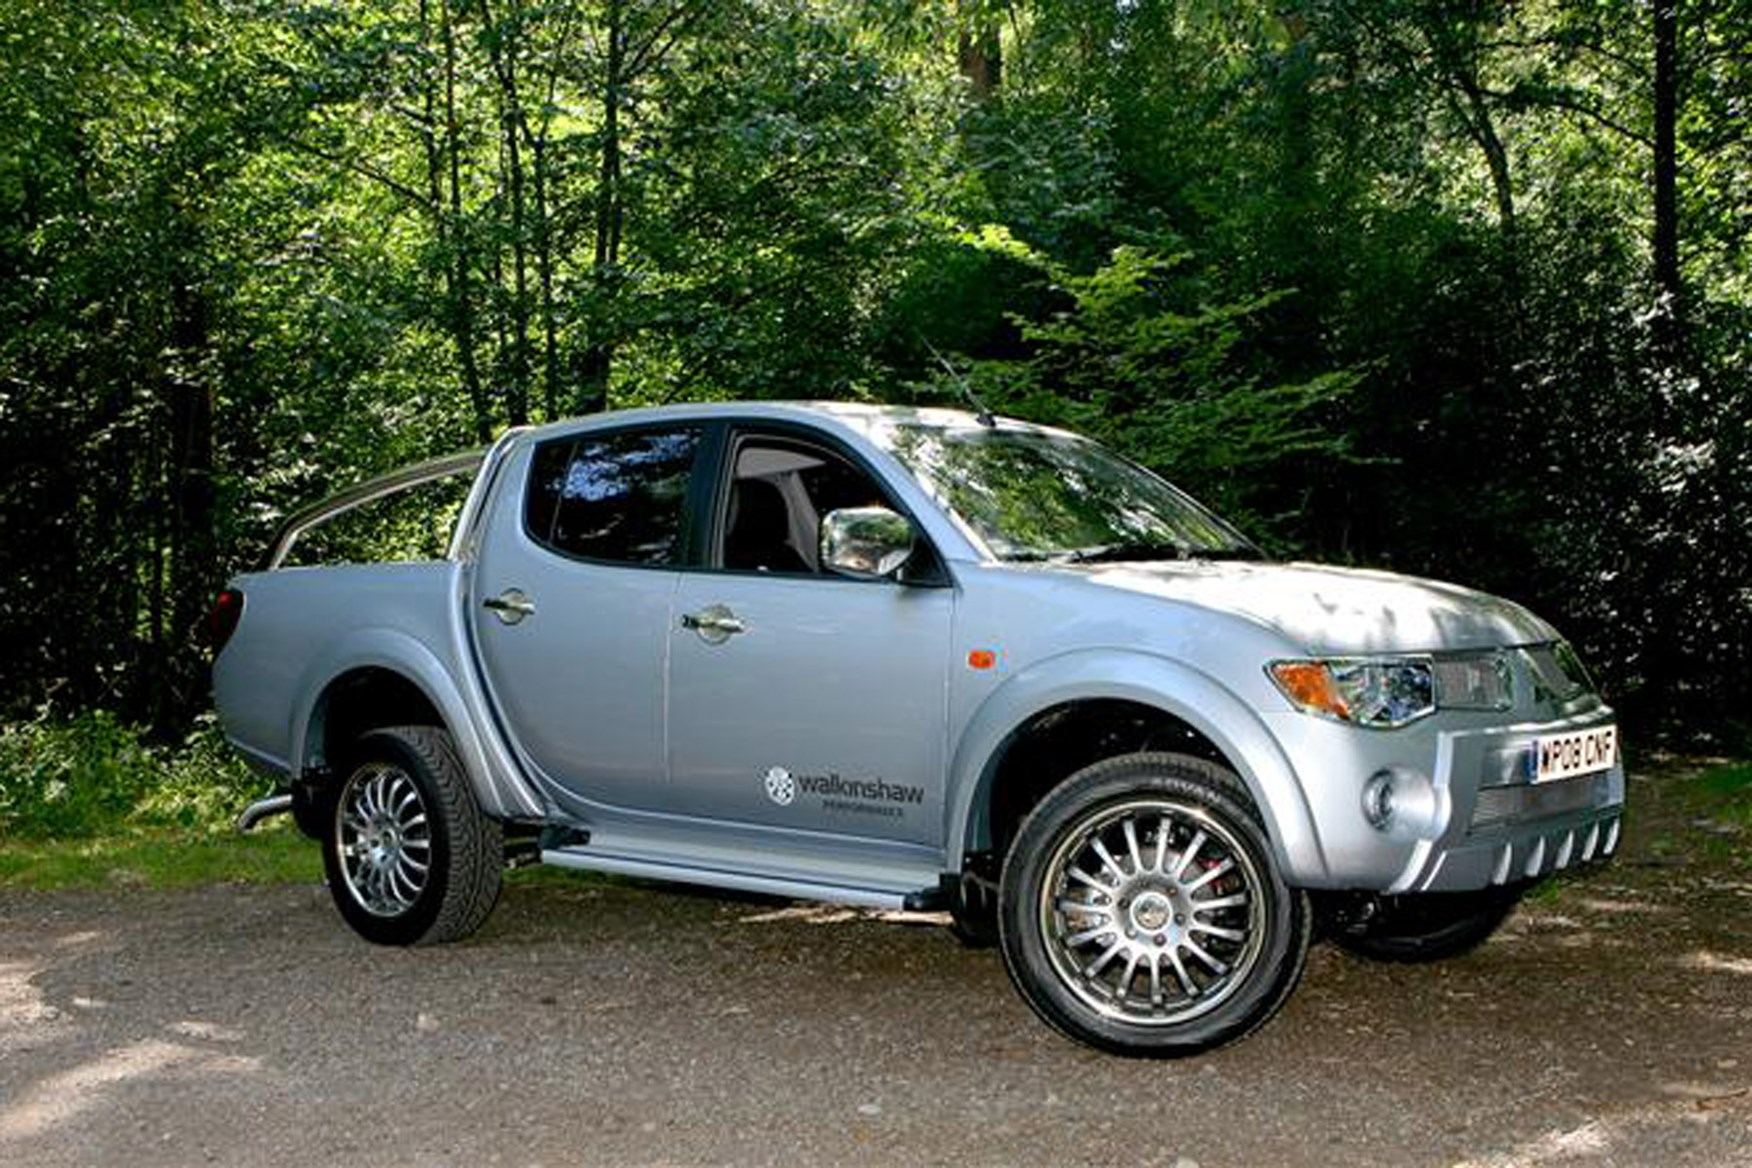 Mitsubishi L200 Pickup Review 2006 2015 Parkers Eclipse Efficiency And Velocity Best Auto Insurance On Vans Exterior